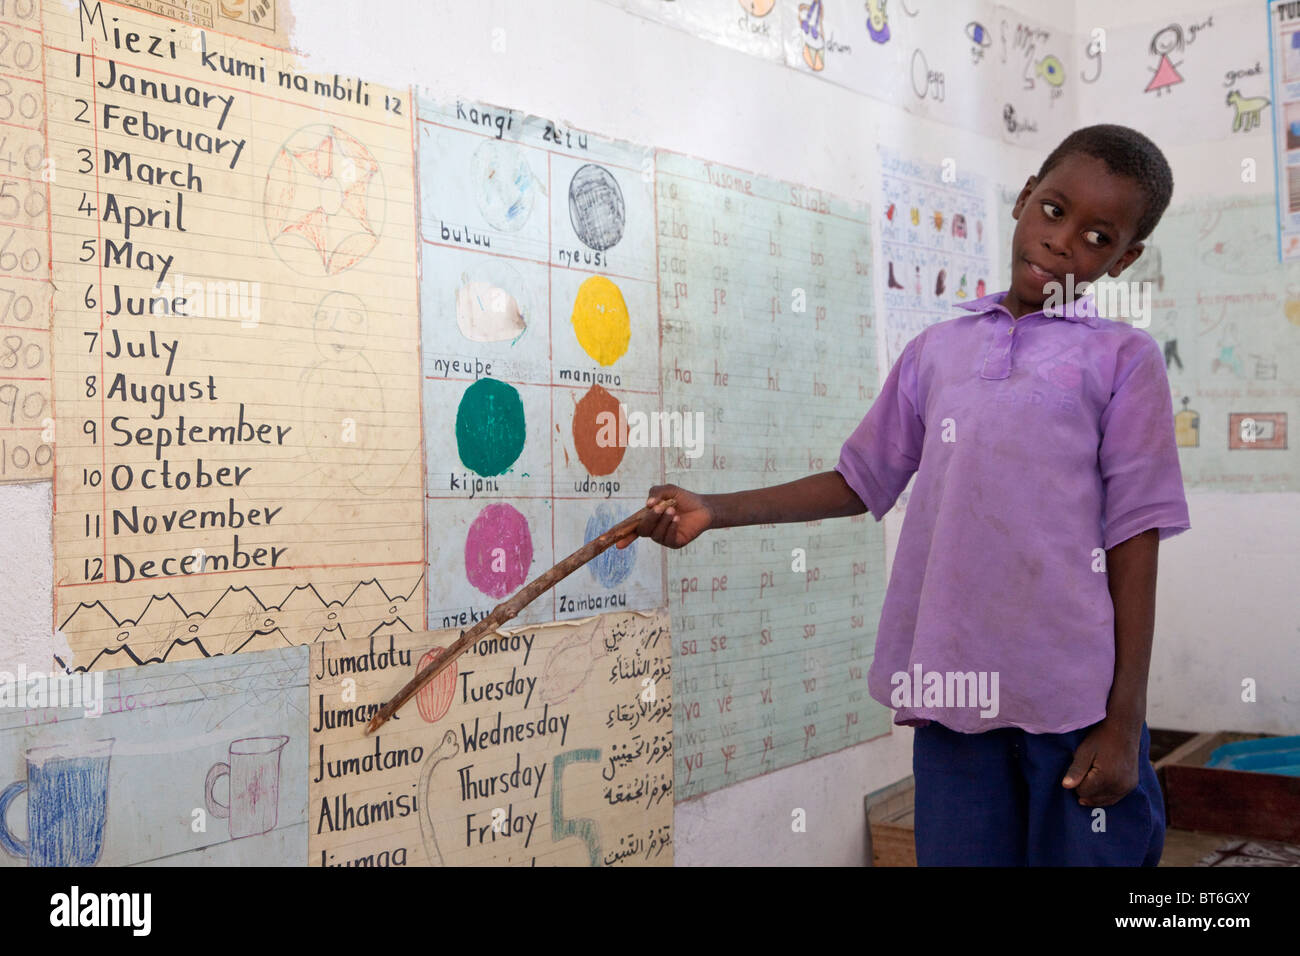 Jambiani, Zanzibar, Tanzania. Young Student Points to the Names of the Days of the Week in Swahili. - Stock Image